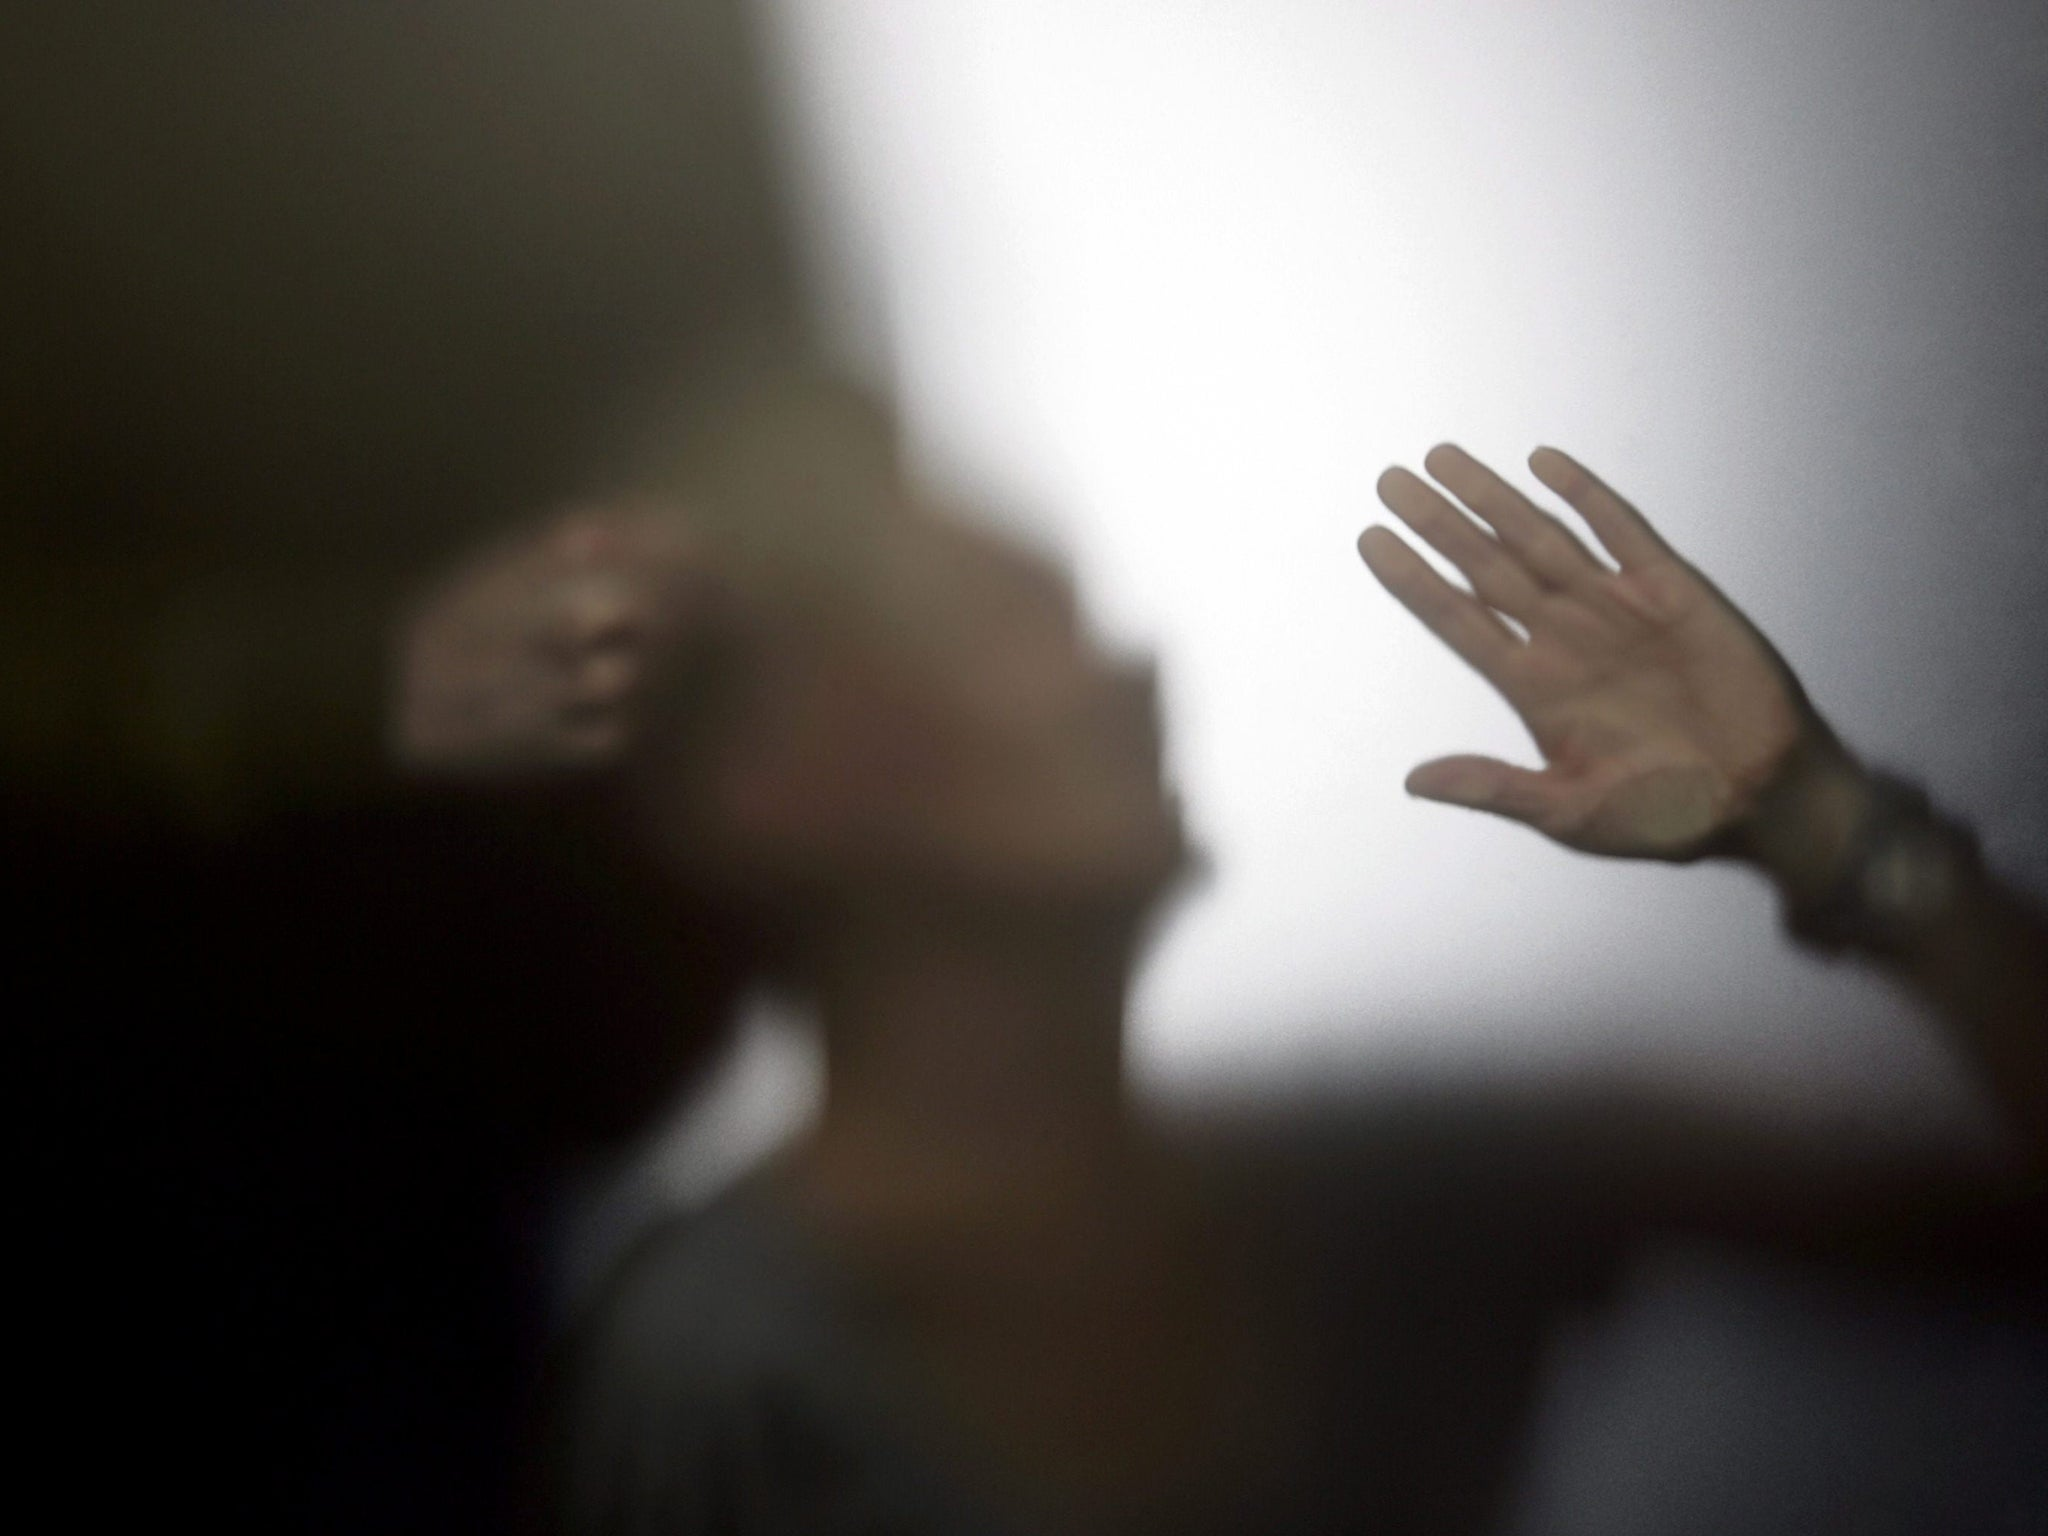 Male victims of domestic violence are being failed by the system | The  Independent